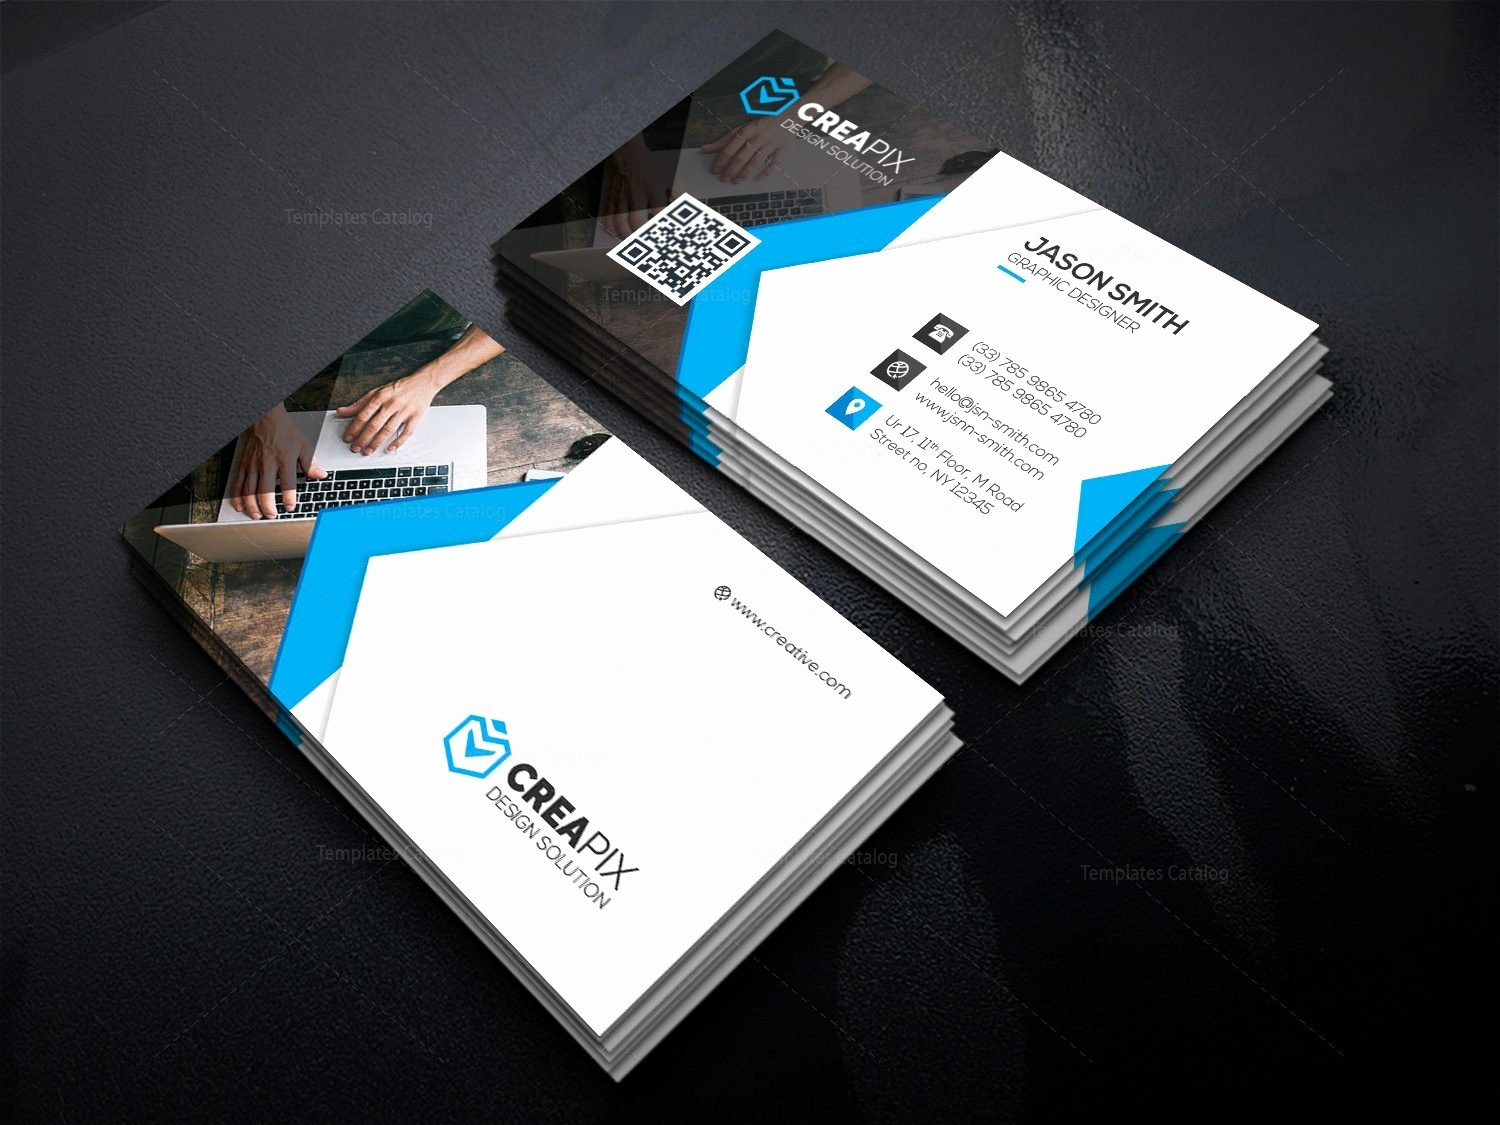 Personal Business Cards Template Inspirational the Gallery for Personal Business Cards Samples